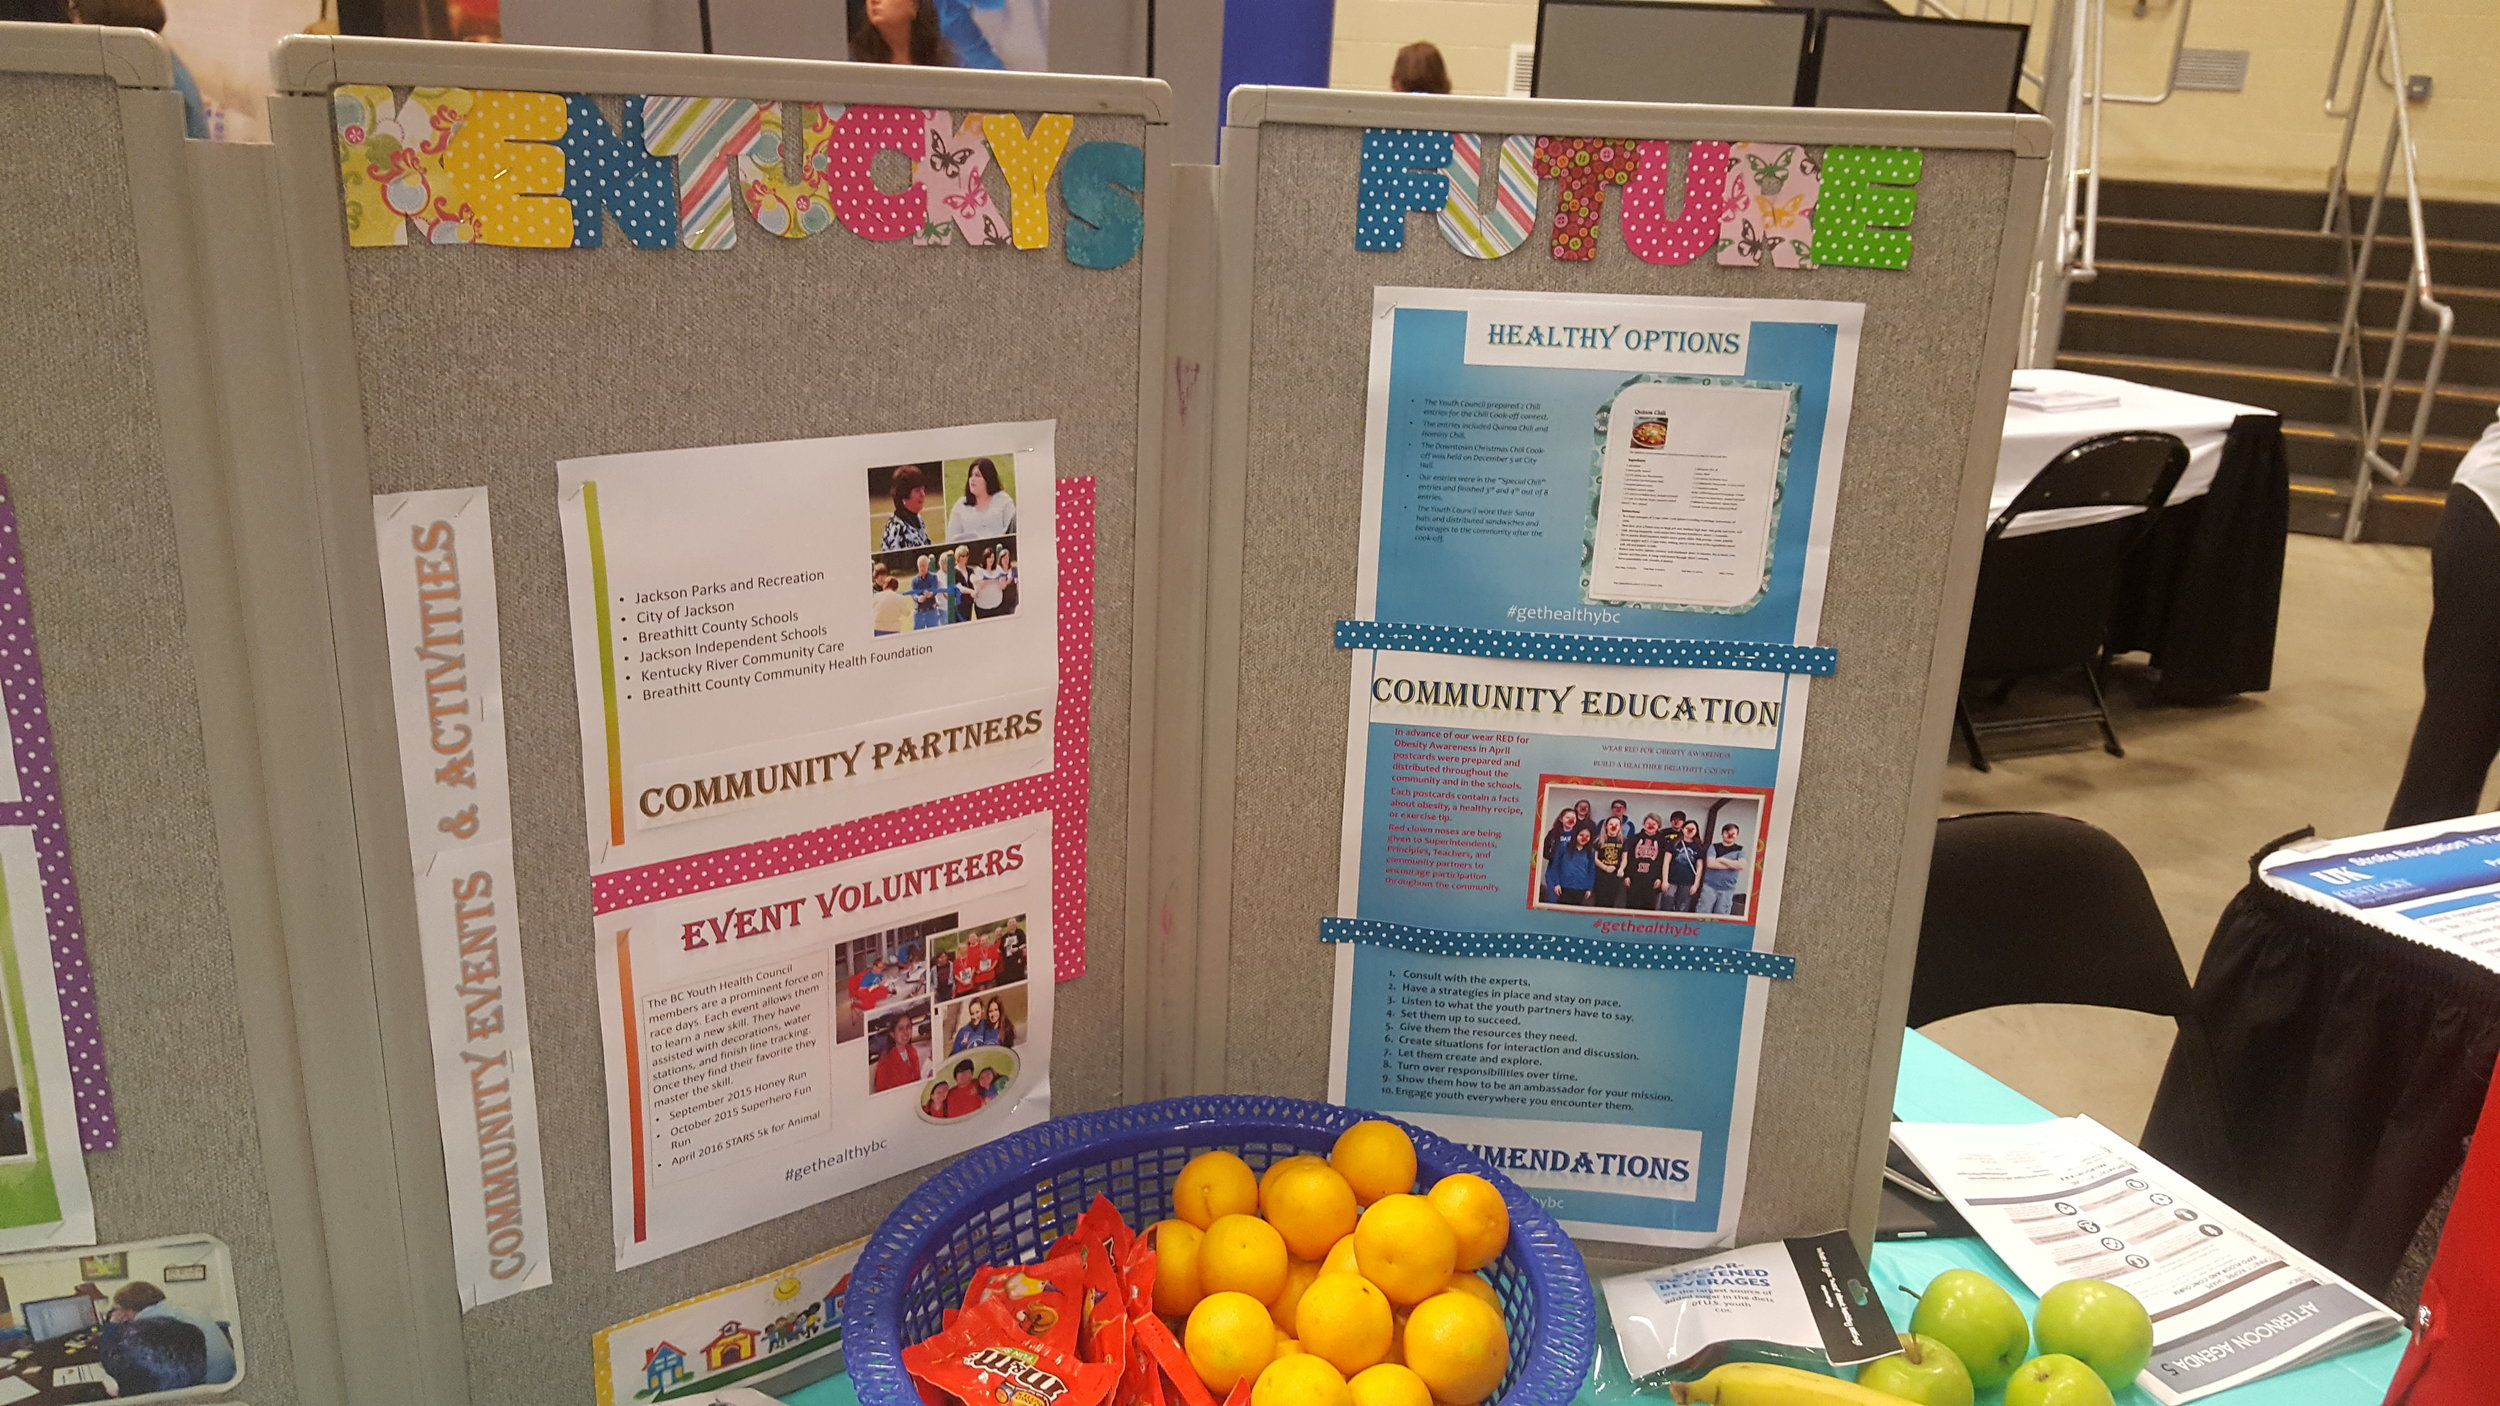 Breathitt County YOUTH Health Council - Investing in Kentucky Future 2.jpg